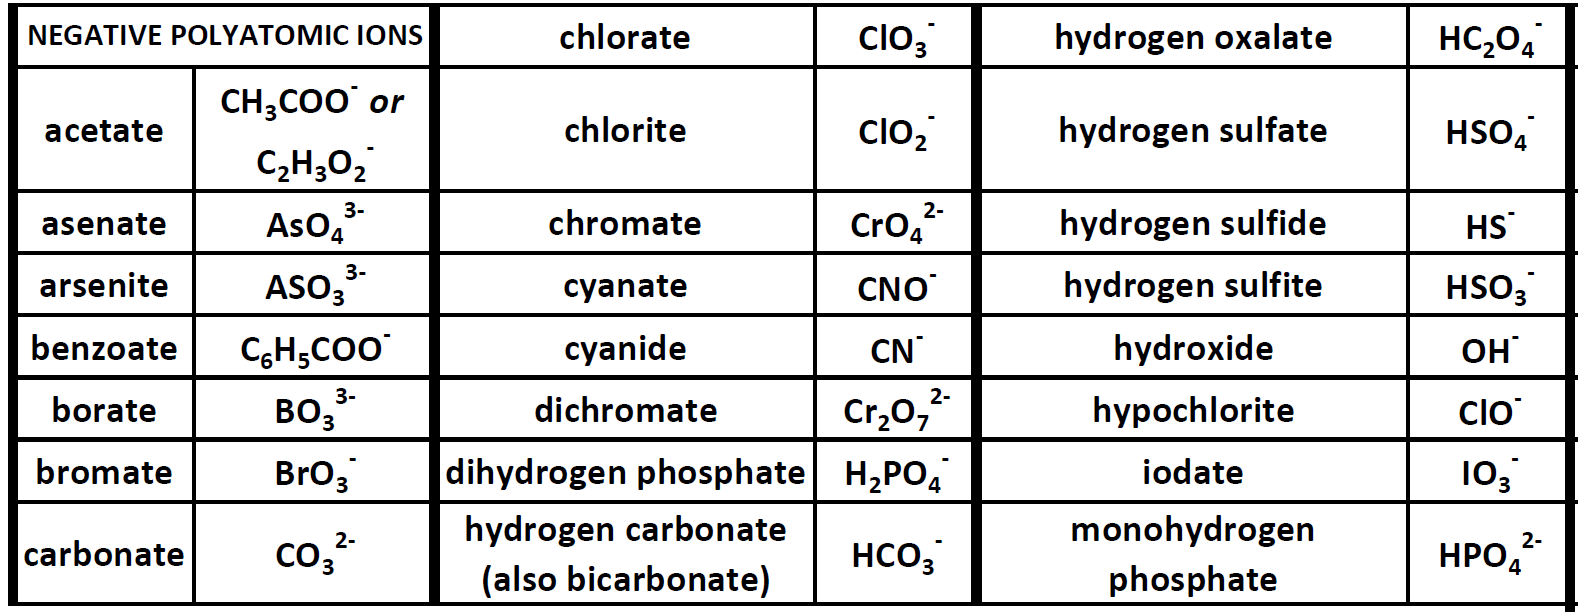 Ch150 chapter 3 ions and ionic compounds chemistry polyatomic ions can be thought of in a very similar way to monoatomic ions in that they are ionized by either gaining or losing electrons so that they gamestrikefo Image collections